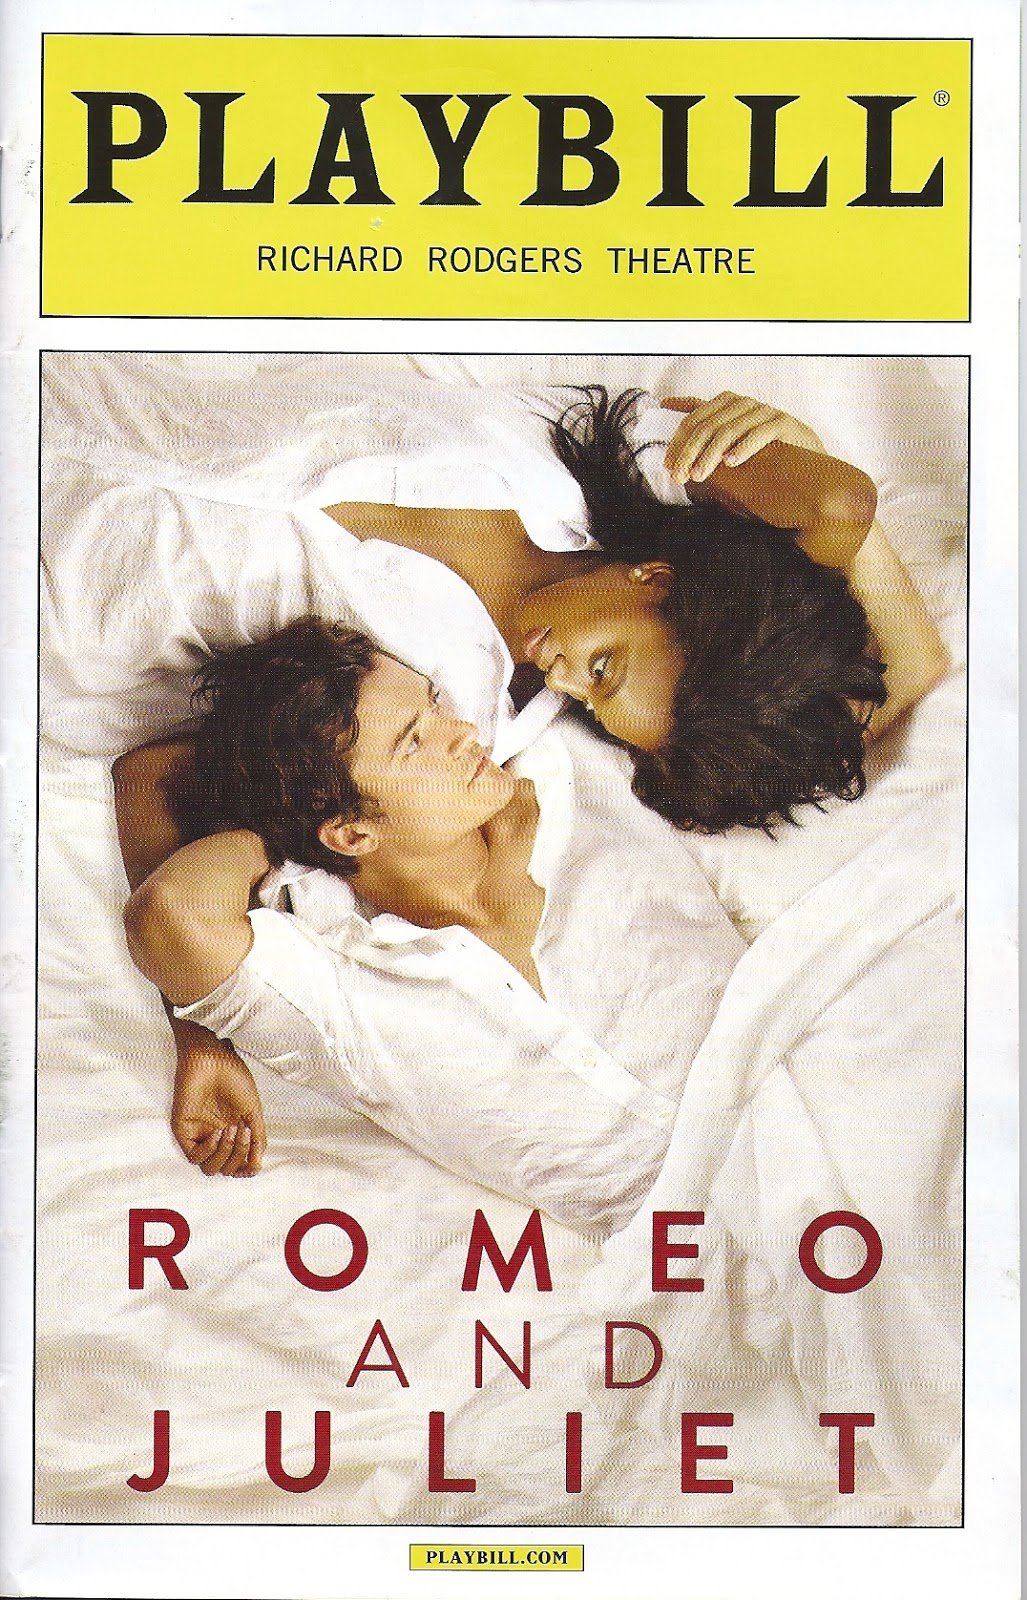 the power of love in romeo View essay - examine the destructive power of love in romeo and juliet from chem 111 at texas a&m jody walshe examine the destructive power of love in romeo and.